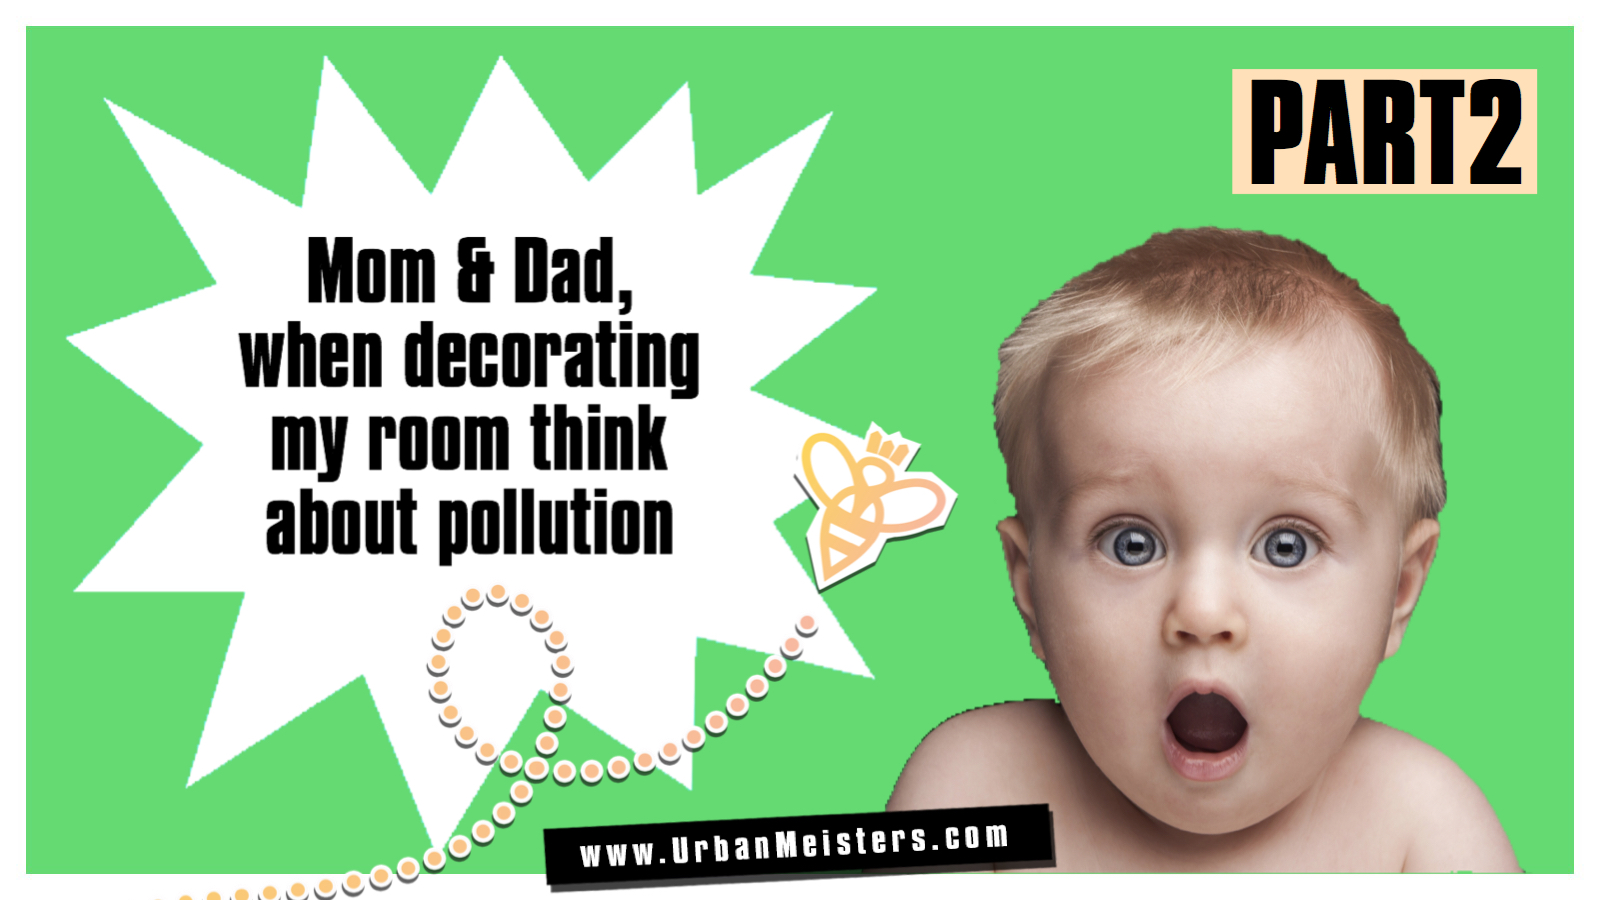 [PODCAST] GREEN Tips for Parents on Pollution Free Kids Room